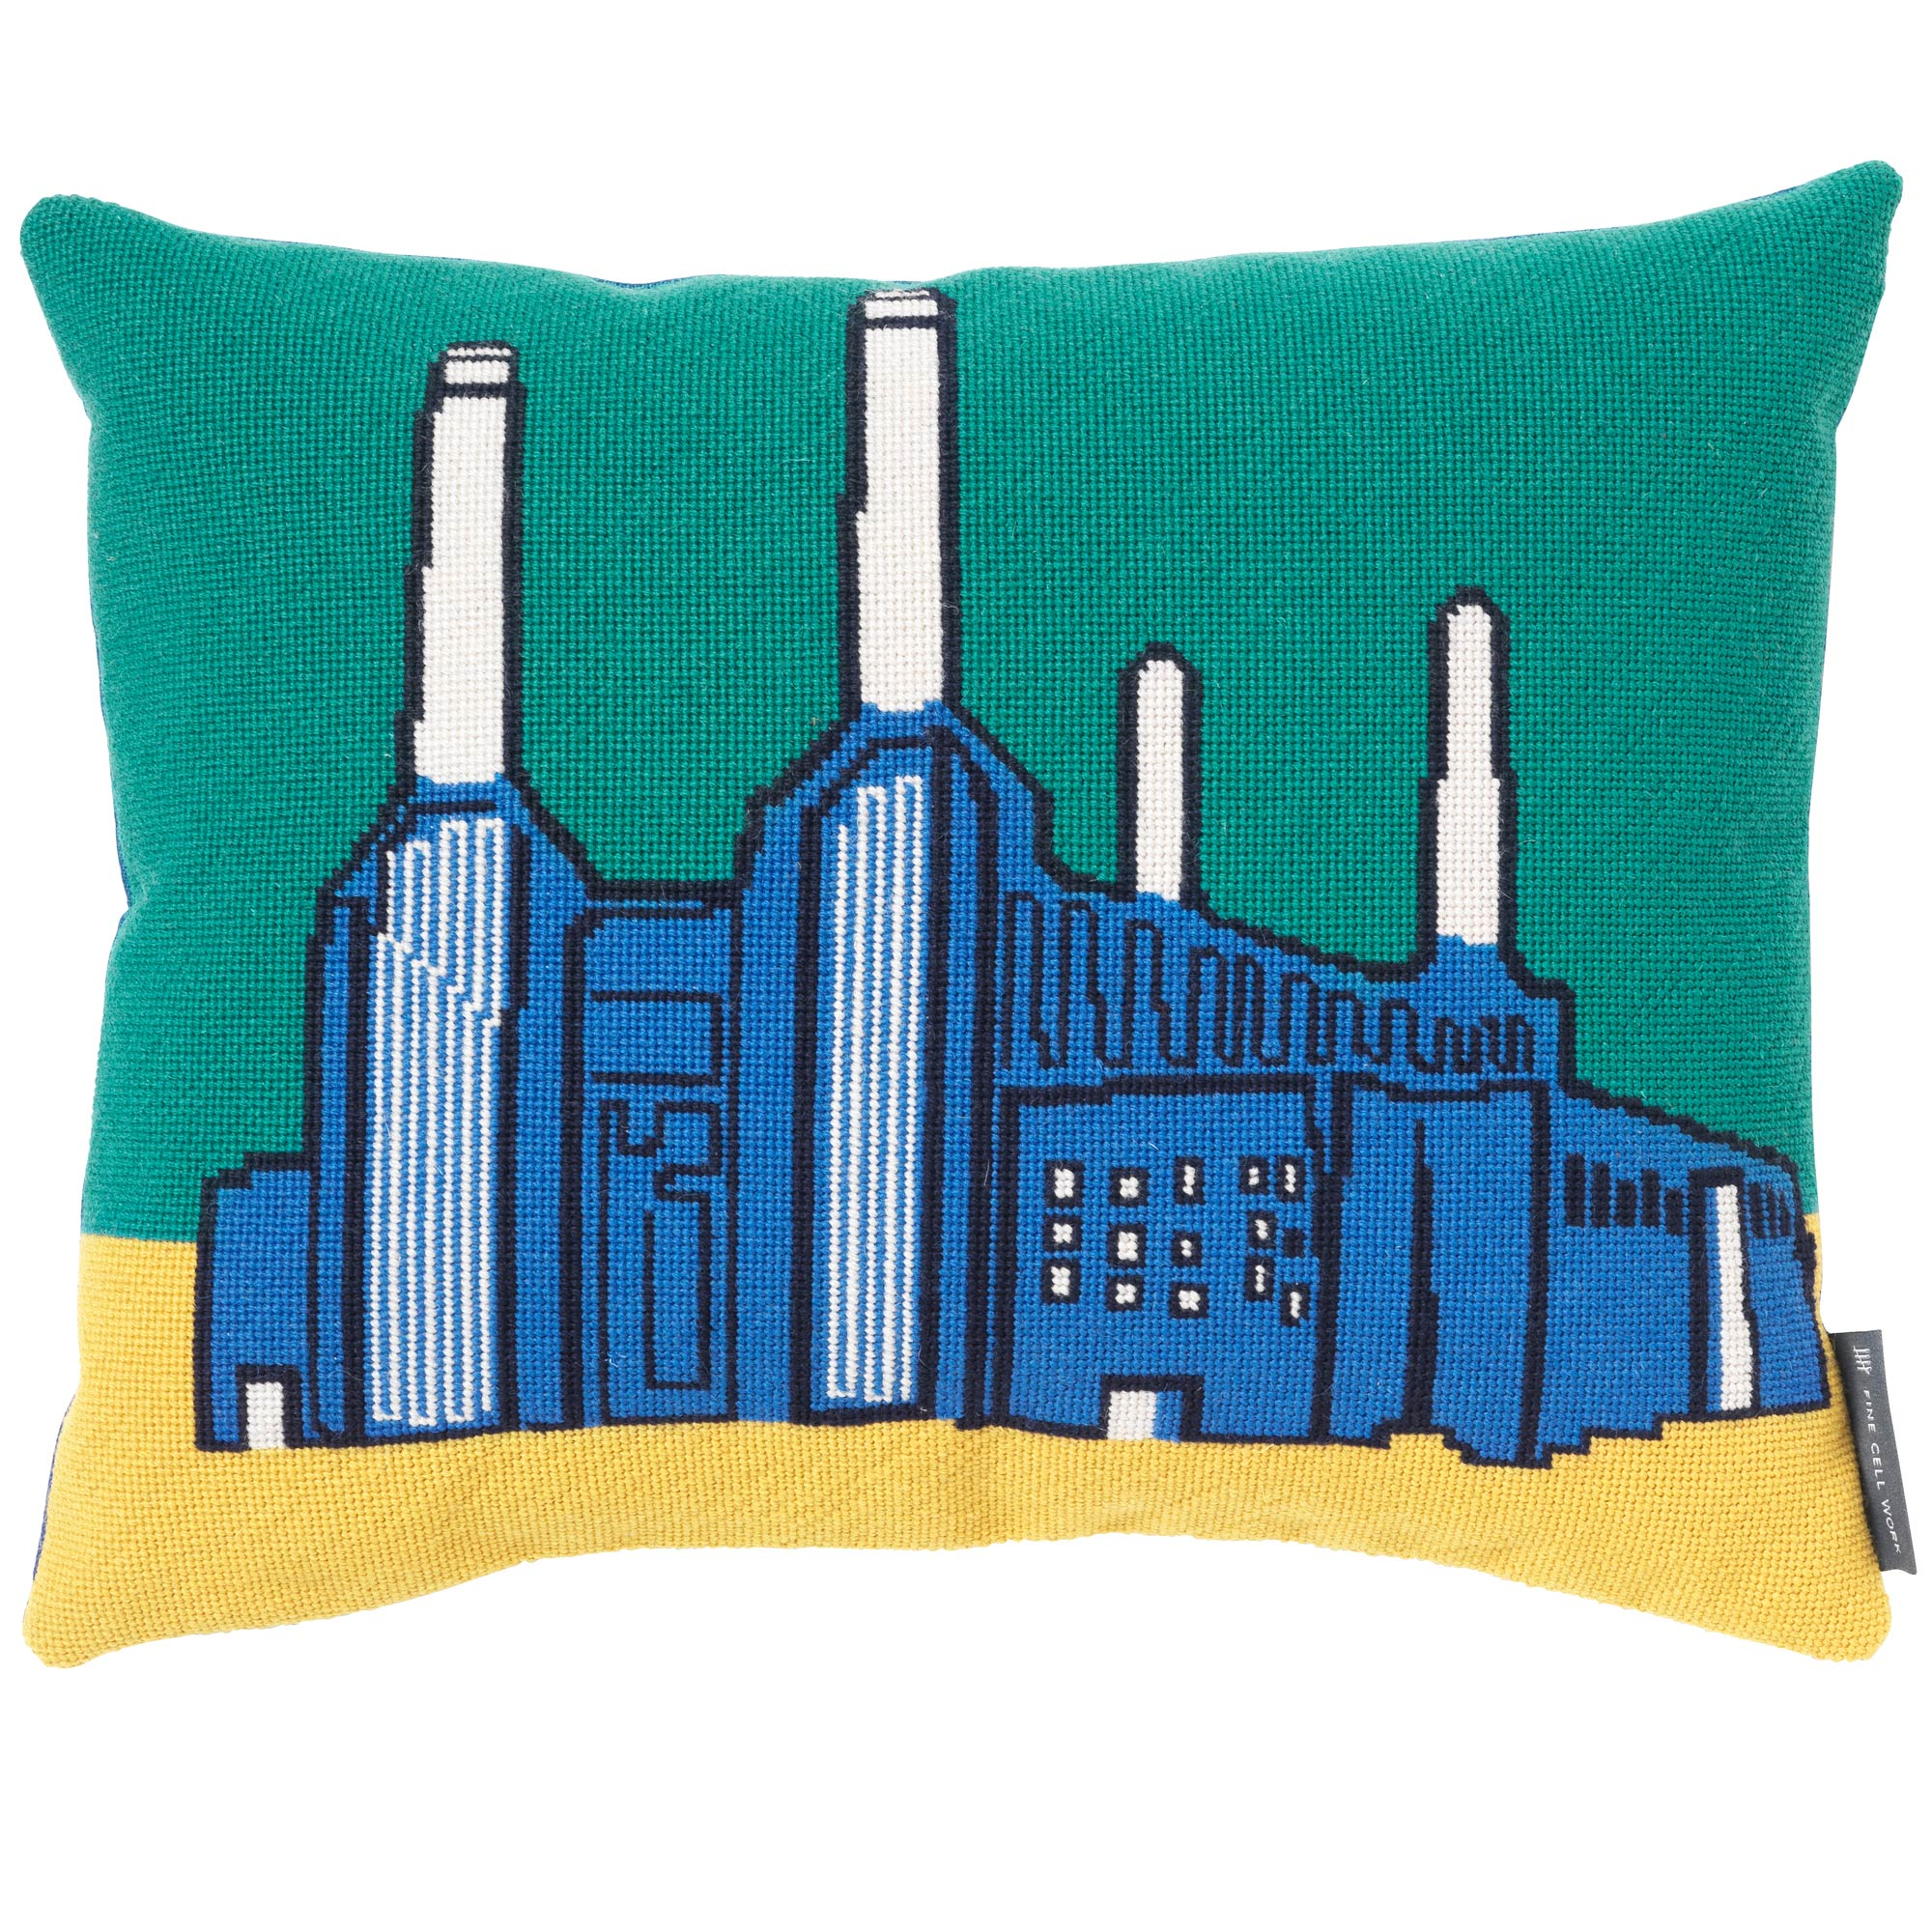 Landmarks Battersea Power Station Needlepoint Cushion Fine Cell Work